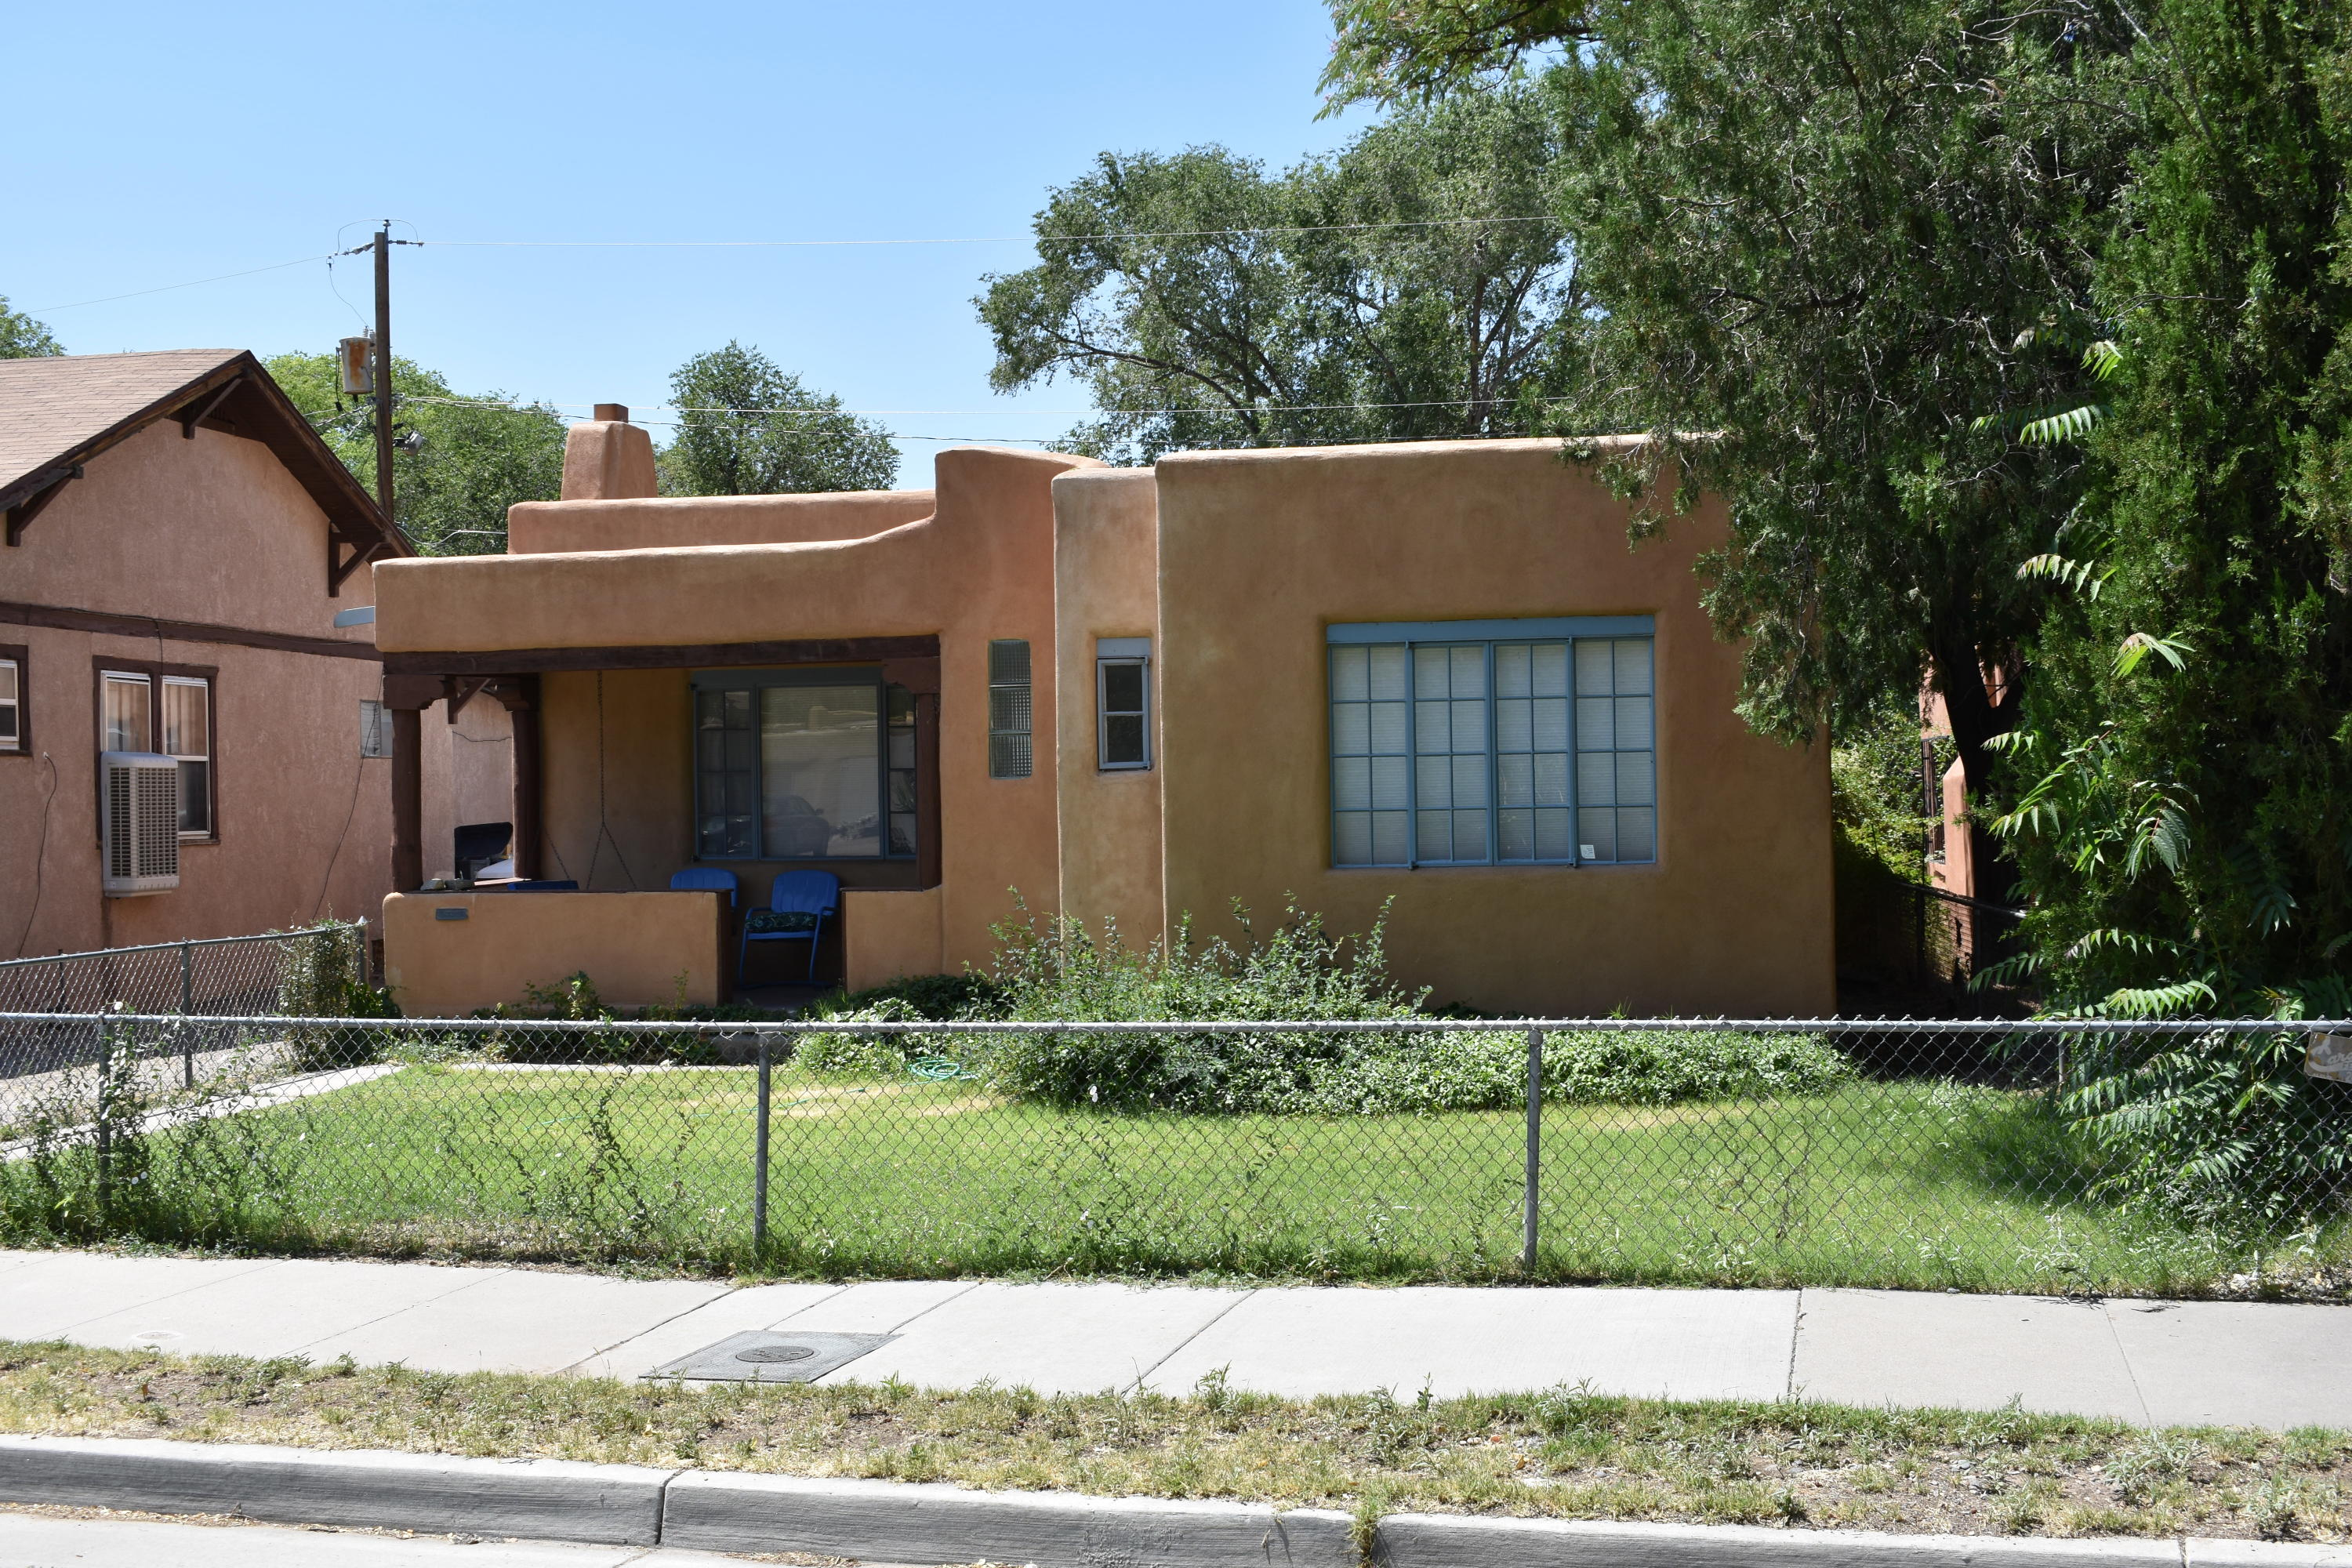 Great location near downtown! Estate Sale. Property is in good condition, but is sold ''As Is''. Cozy 3 bedroom, 1 full bath & 1/2 bath. Larger living area with fireplace. Dining room, kitchen bar, gas range . Newer cooler, furnace. Separate utility area. Refrigerator, washer & dryer included.